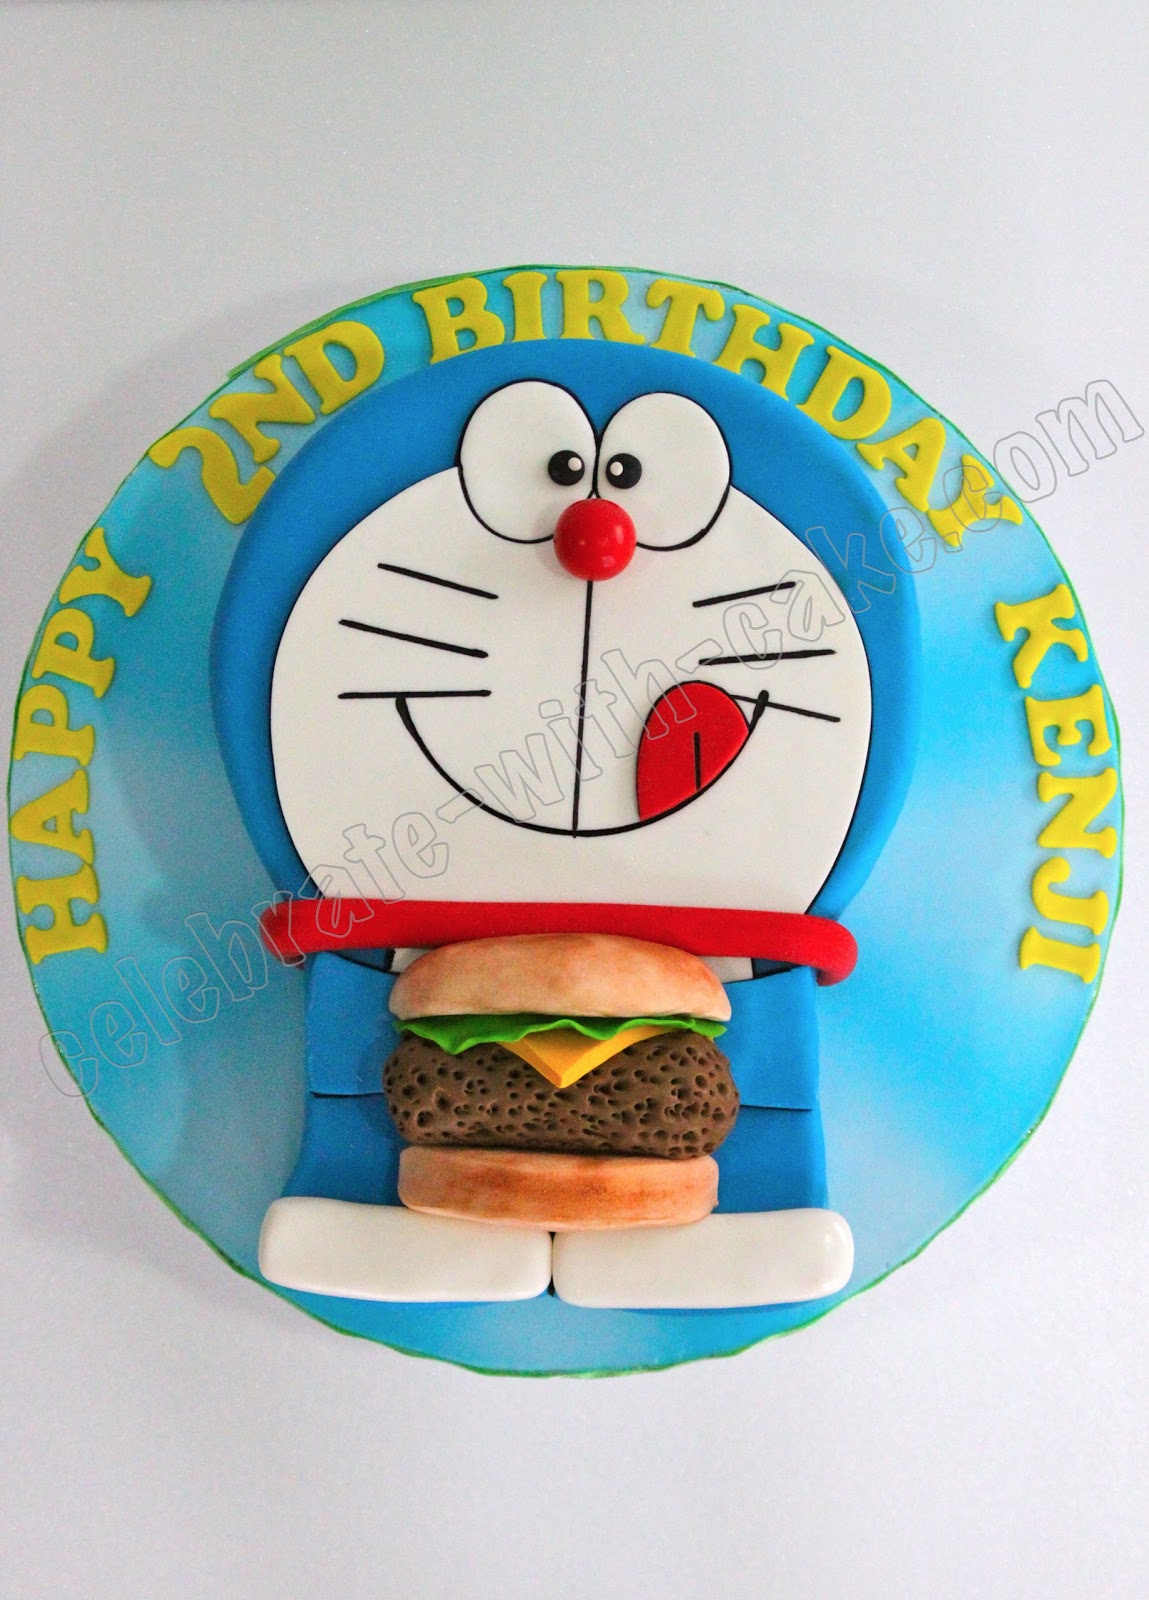 Doraemon Birthday Cake Images : Celebrate with Cake!: Doraemon Cake